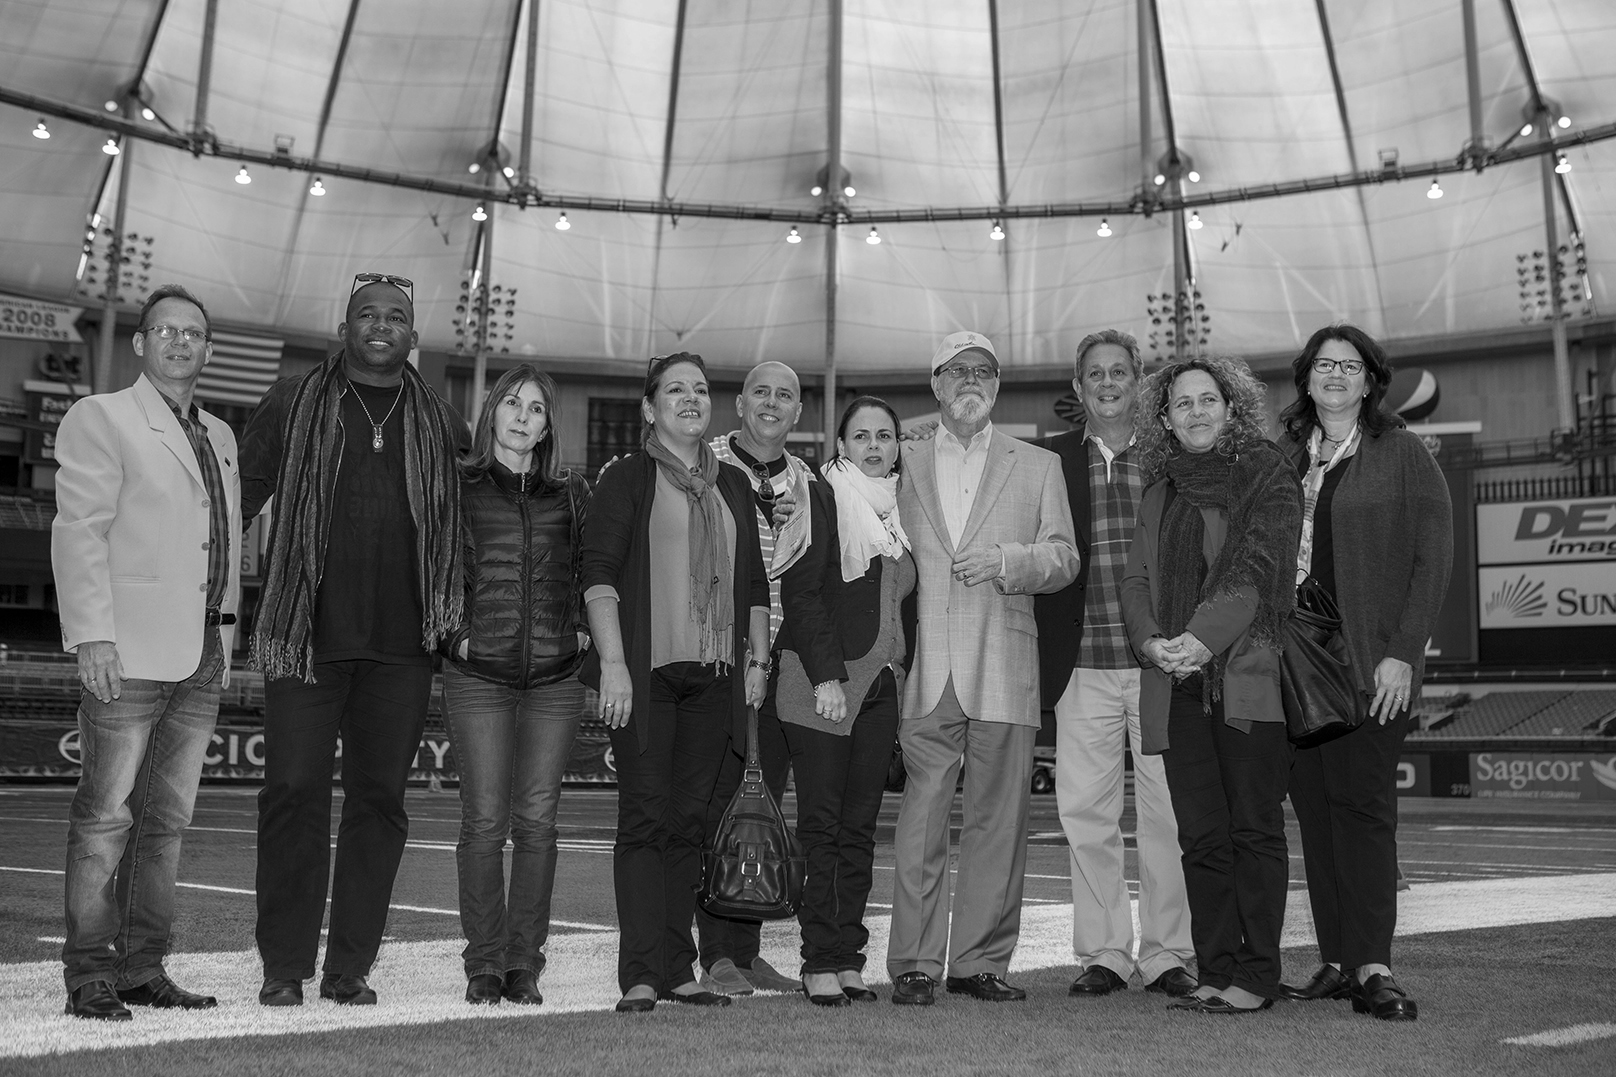 Members of a nine-person Cuban delegation hosted by the St. Petersburg Downtown Partnership and local city officials, spent three days touring St. Pete's museums, art programs and Tropicana Field. Left to right - Cuban artist Estaben Machado, Vilmaidy Bombale Laborde, Director of Communications and Events of the National council of Fine Arts; Sandra Fuentes Guevara, Director of Escuela Nacional de Bellas Artes; Marisol Peraza Simon, Director of Ministry of Culture - North America; Rafael Mendez Gonzalez, General Director Arte y Moda company; Rosa Teresa Rodriguez, Ministry of Culture Deputy Director; Albert A. Fox Jr. Founder and President of the Alliance for Responsible Cuba Policy Foudation; Alfredo Ruiz Roche, Director of Ministry of Culture and the Department of International Relations; Ana Cristina, Director of the National Fine Arts Museum in Cuba; Joni James, CEO of St. Petersburg Downtown Partnership.